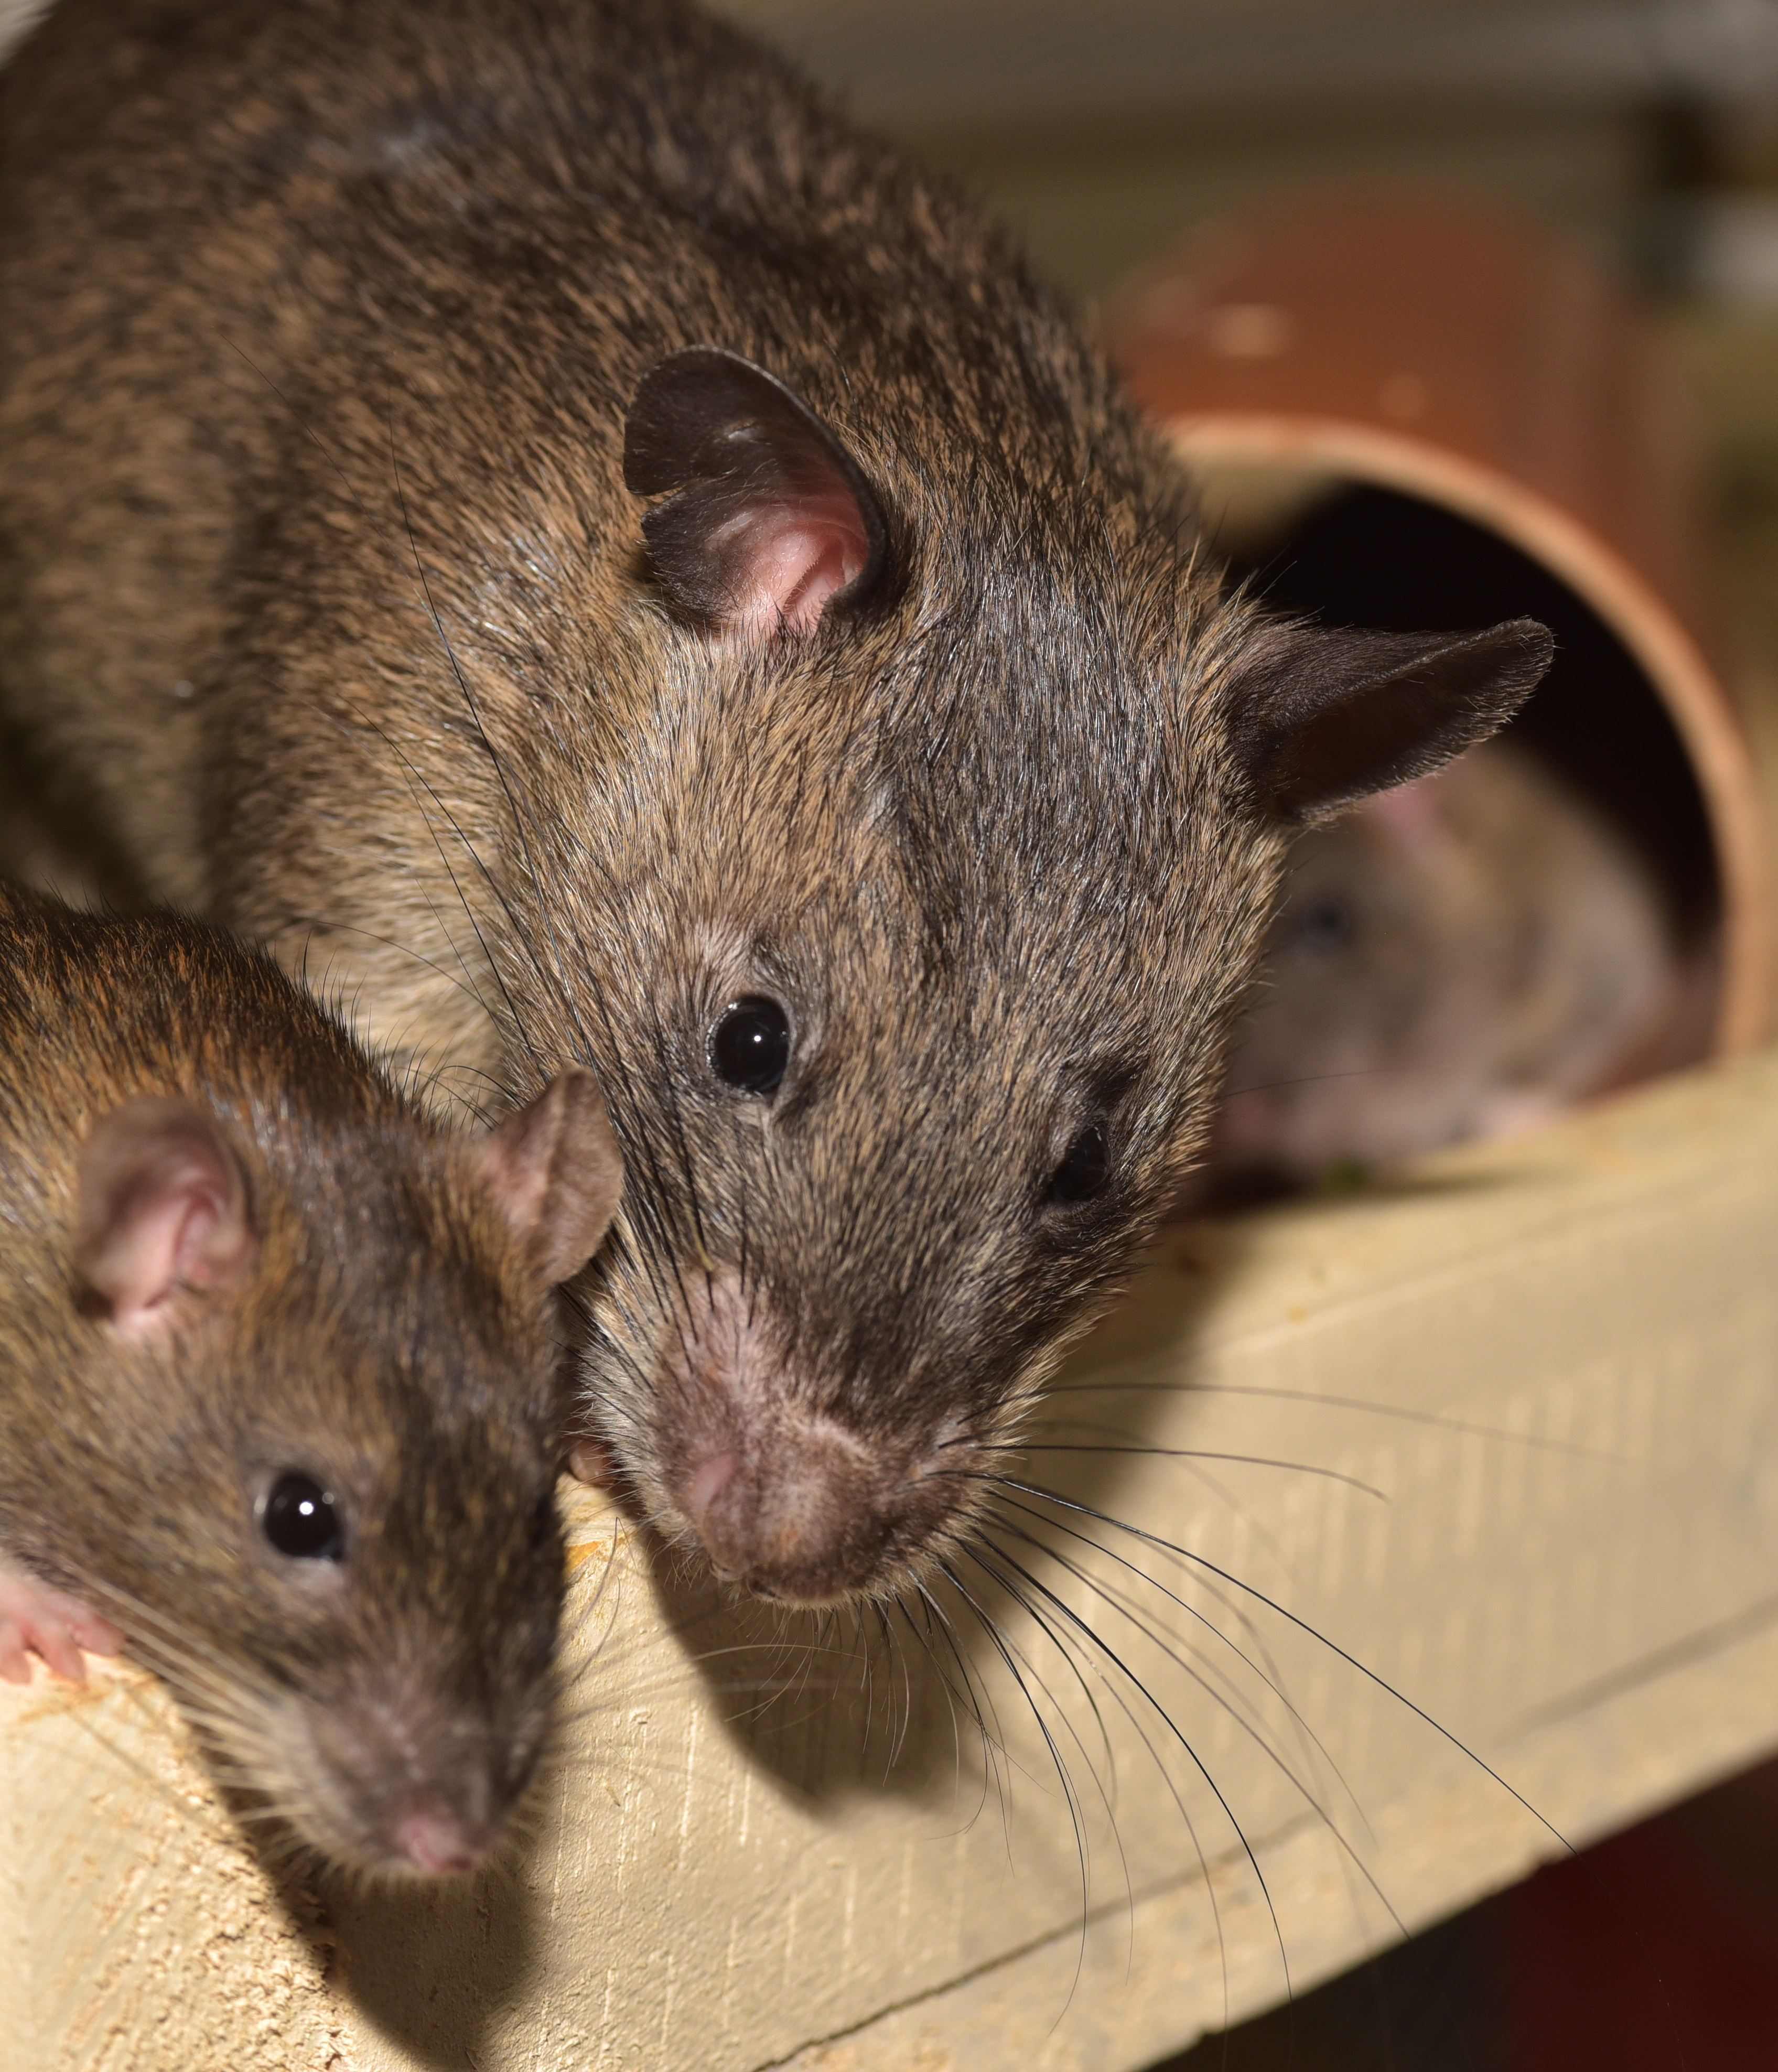 Rats in house